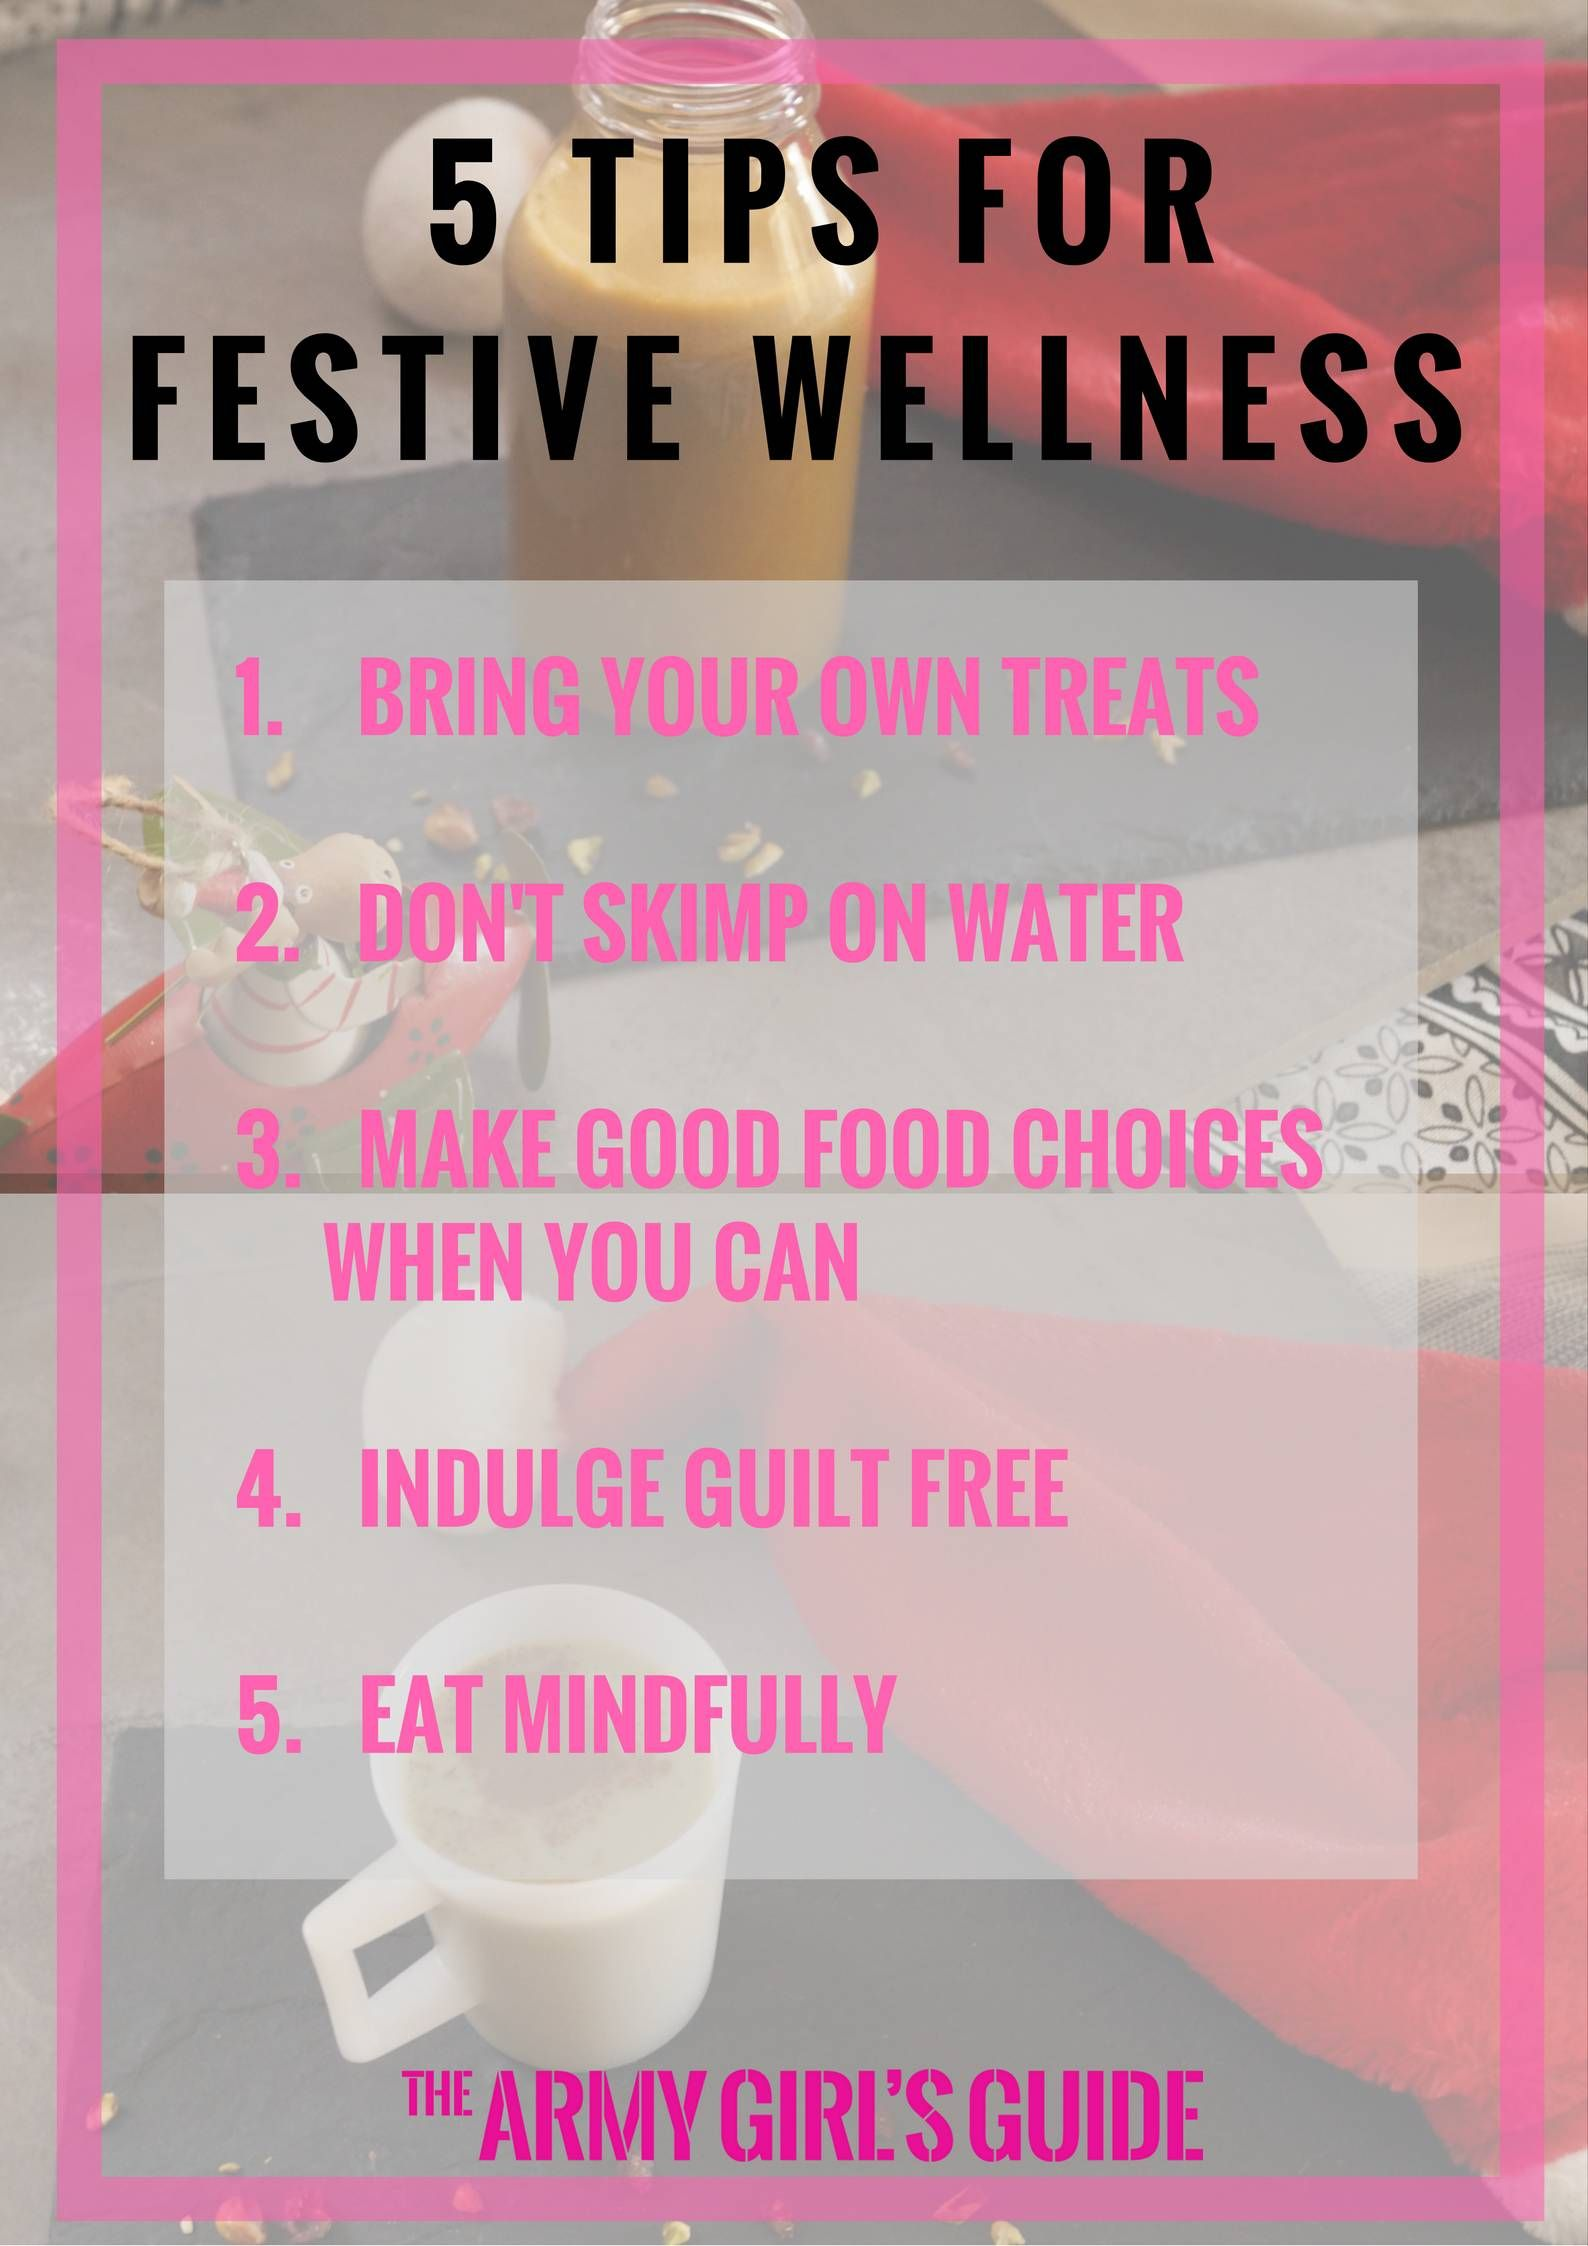 c1f3841d1213 Week - Christmas doesn t always mean getting fat! Check out my 5 tips for  festive wellness – The Army Girl s Guide